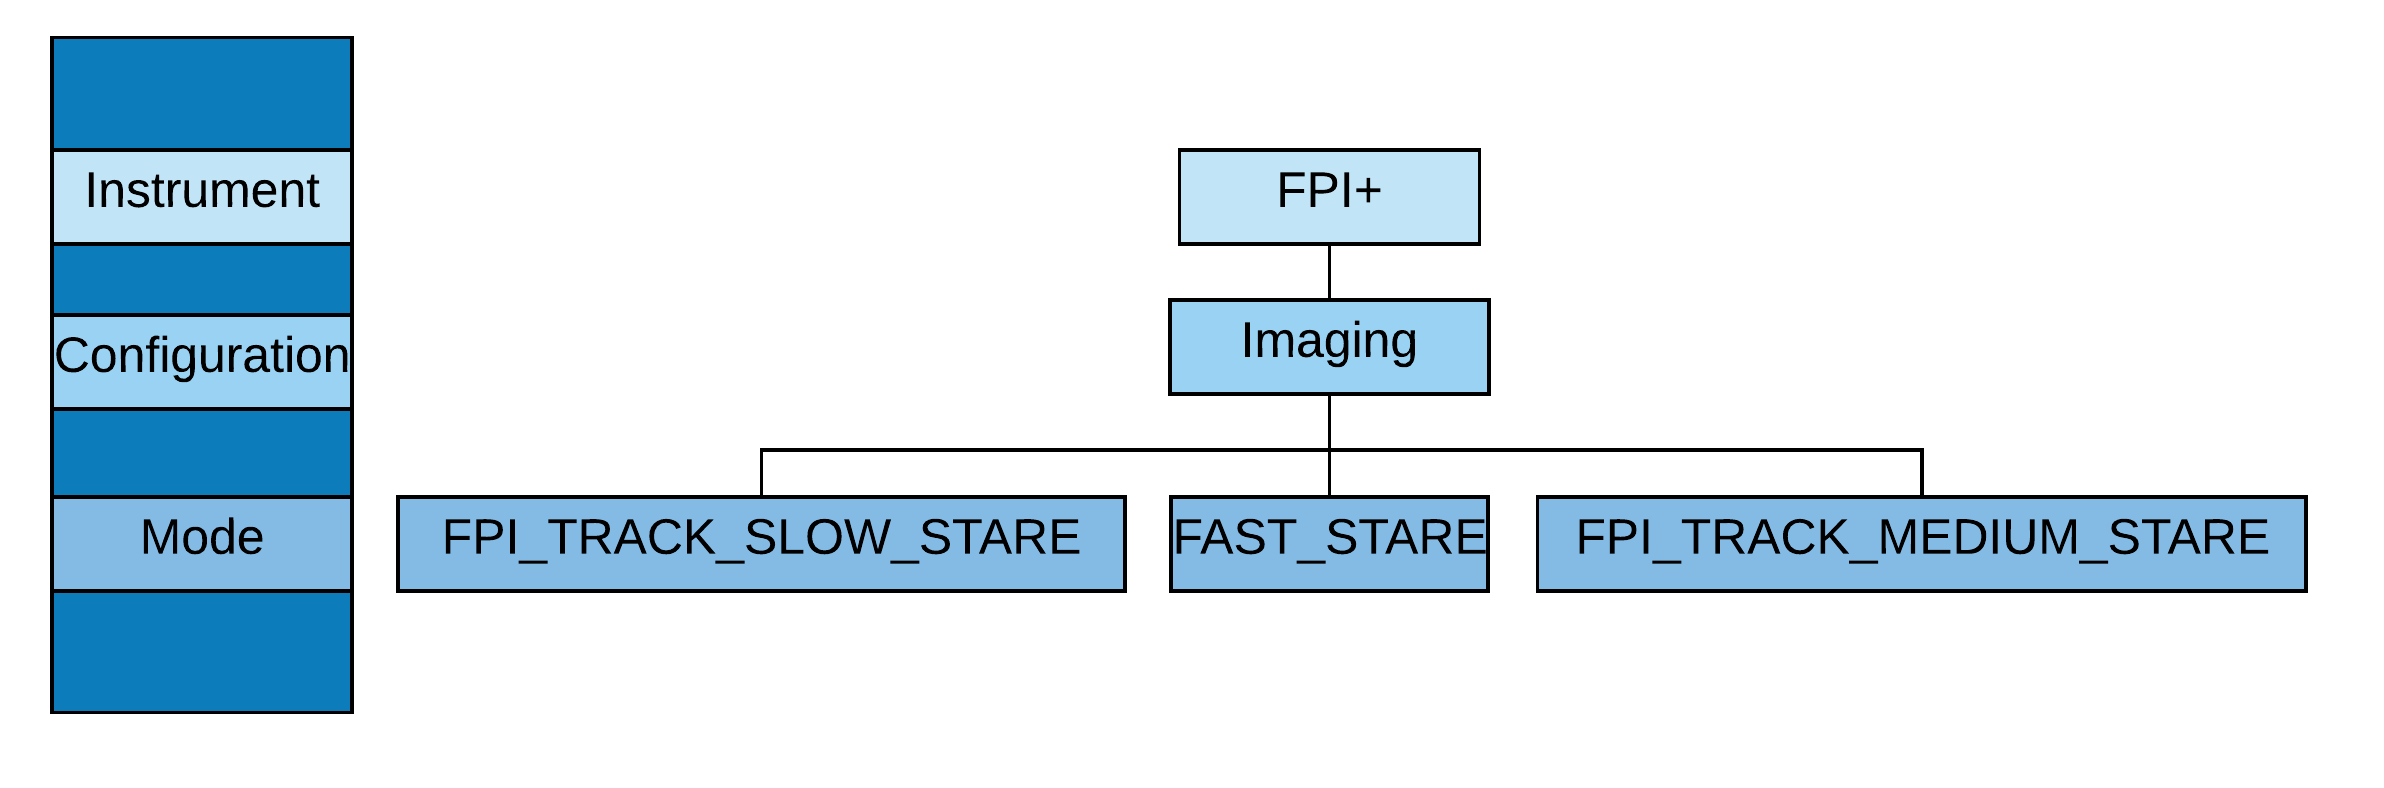 FPI plus configuration and mode flowchart diagram